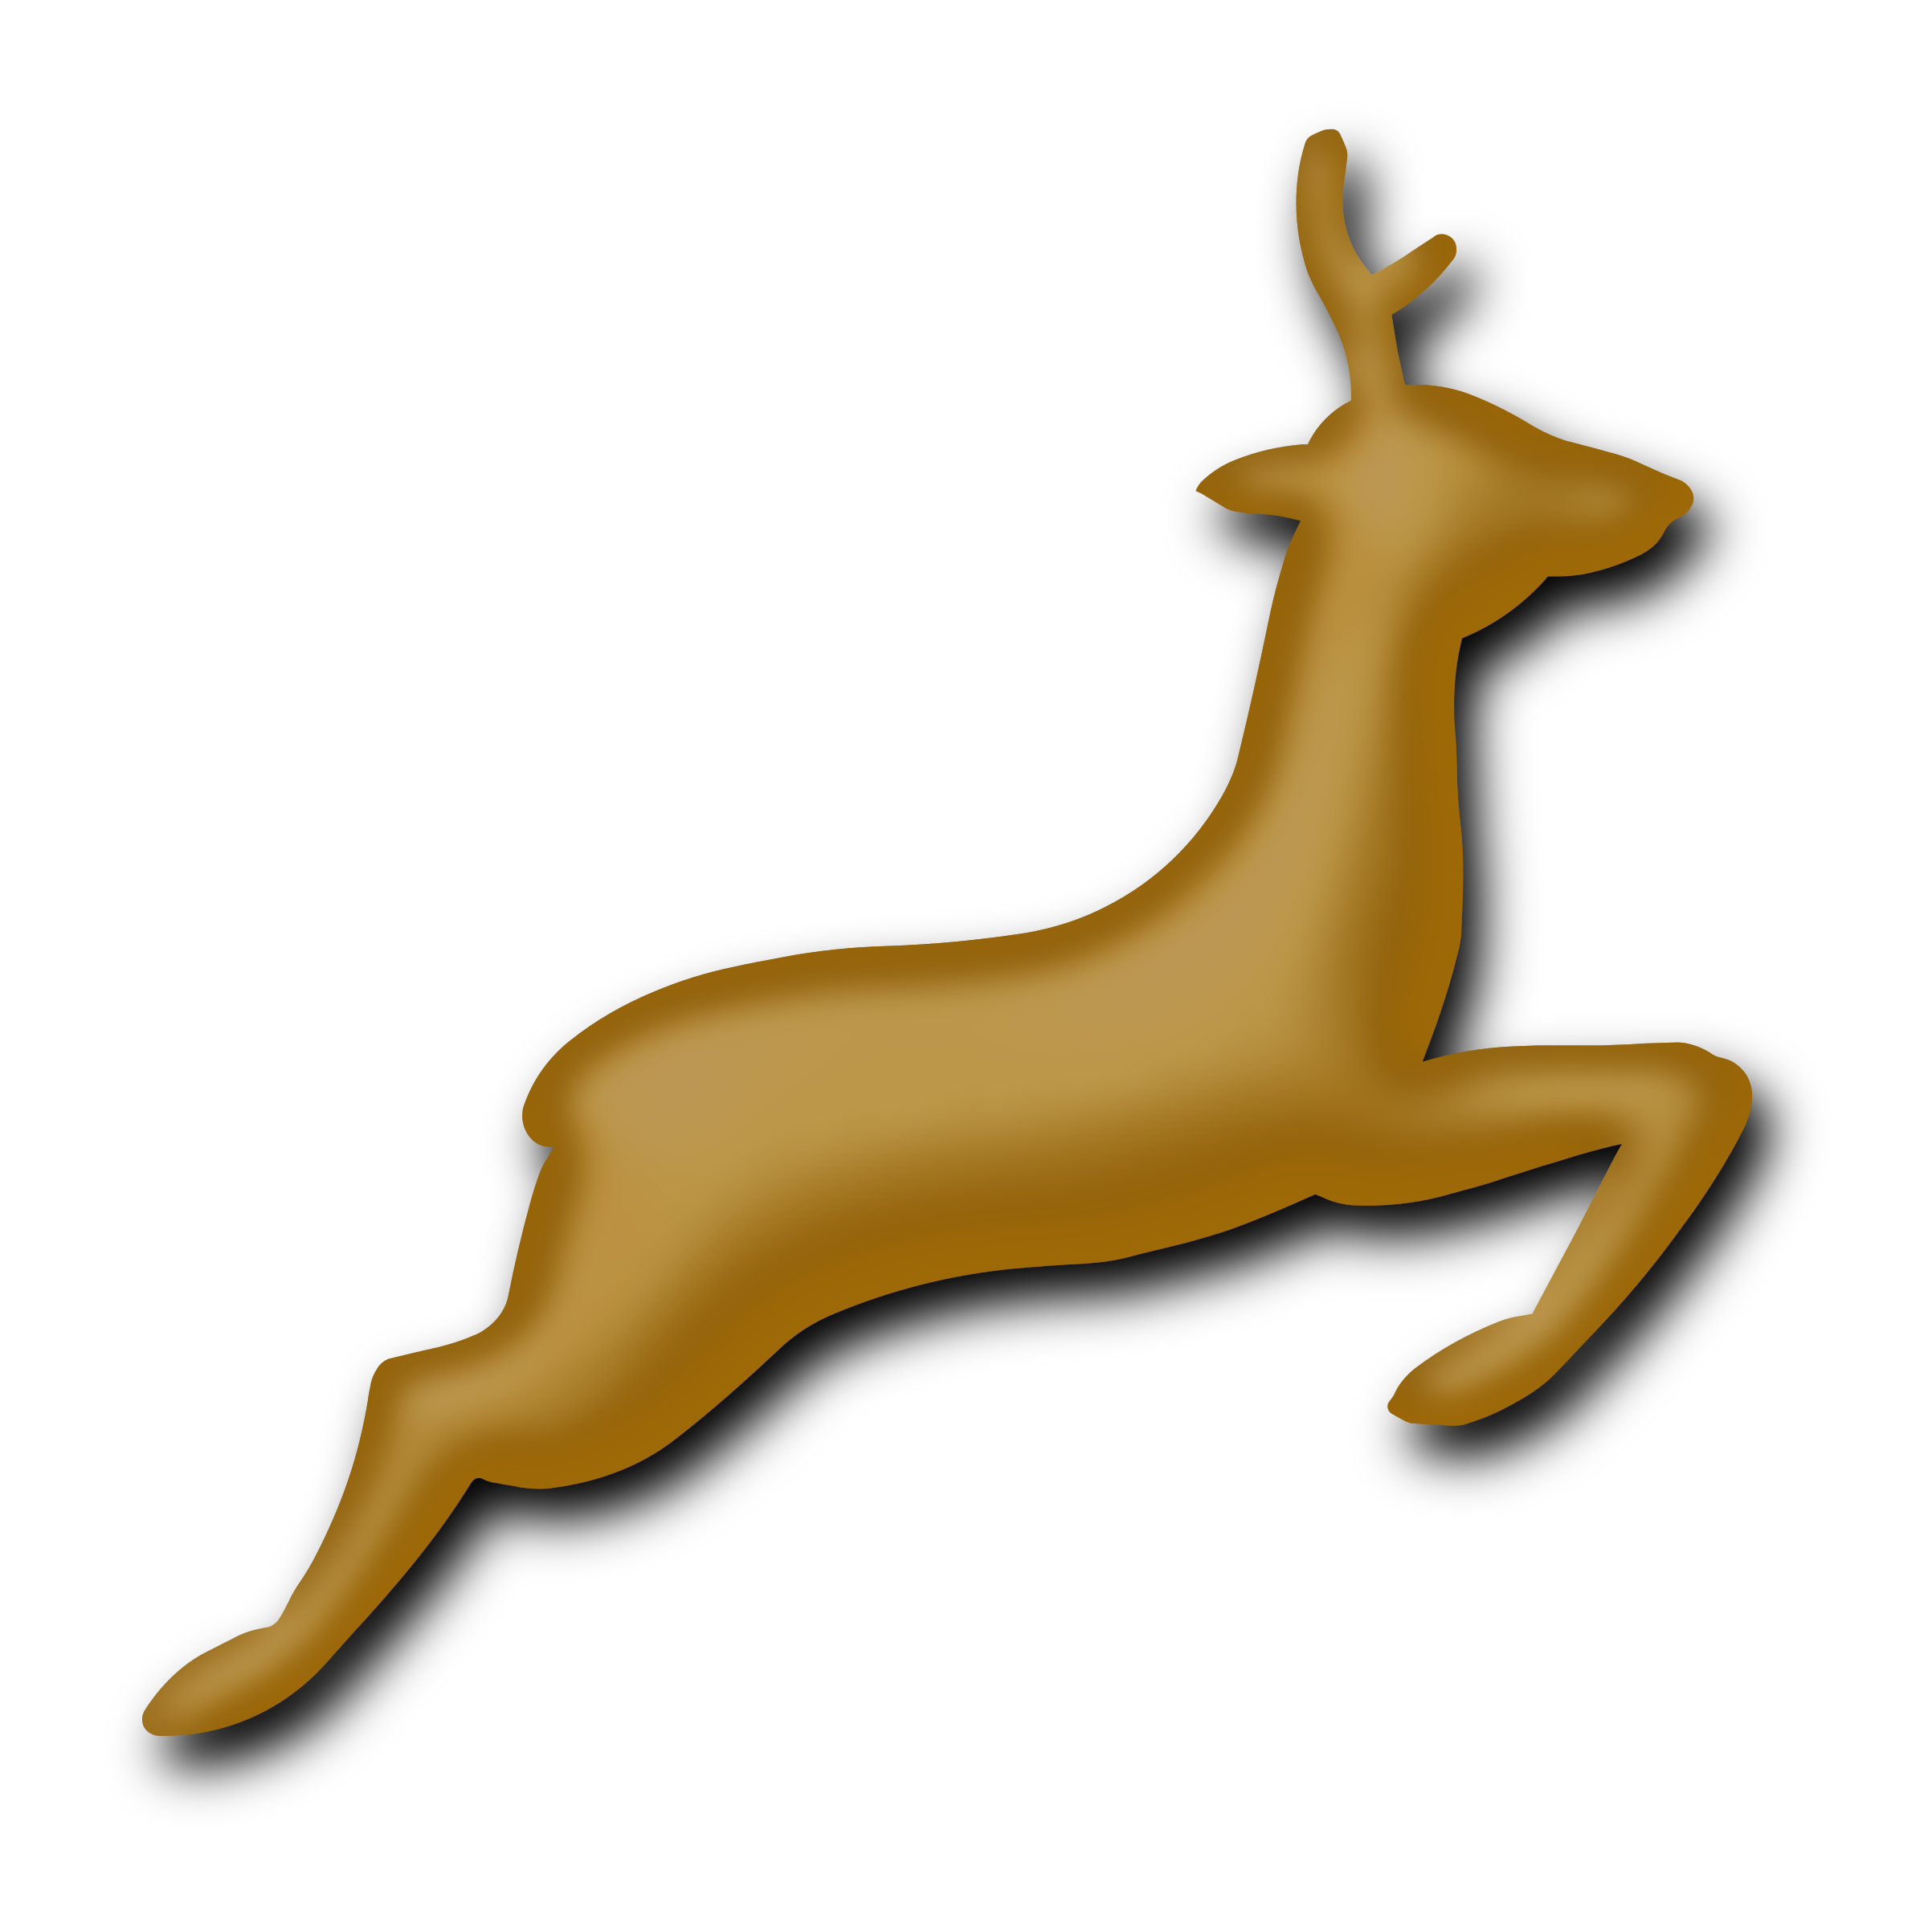 Deer 3 by Firkin